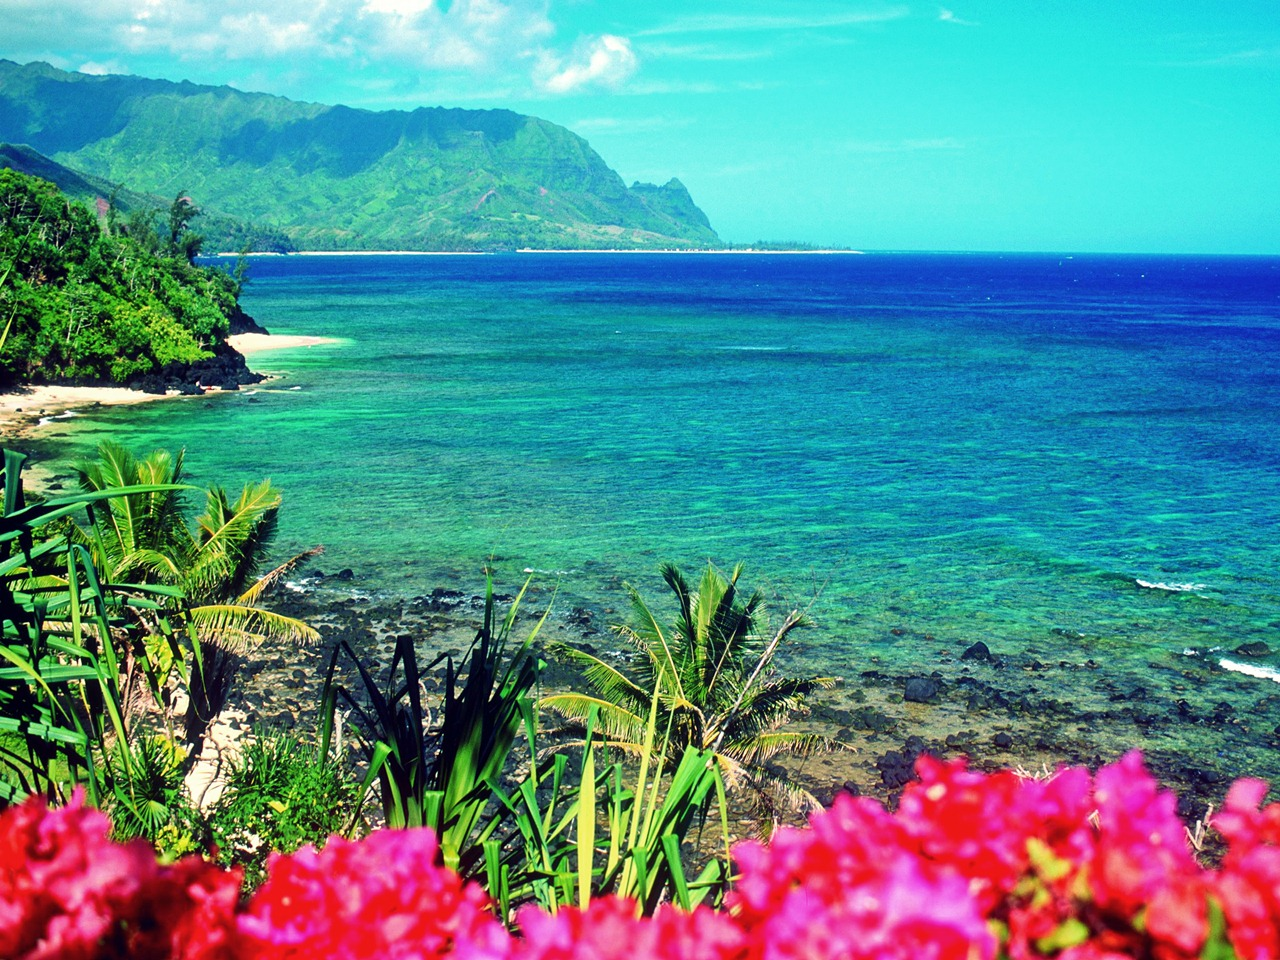 Image taken from http://paradiseintheworld.com/hawaii-travel-guide-to-vacation-in-hawaii/